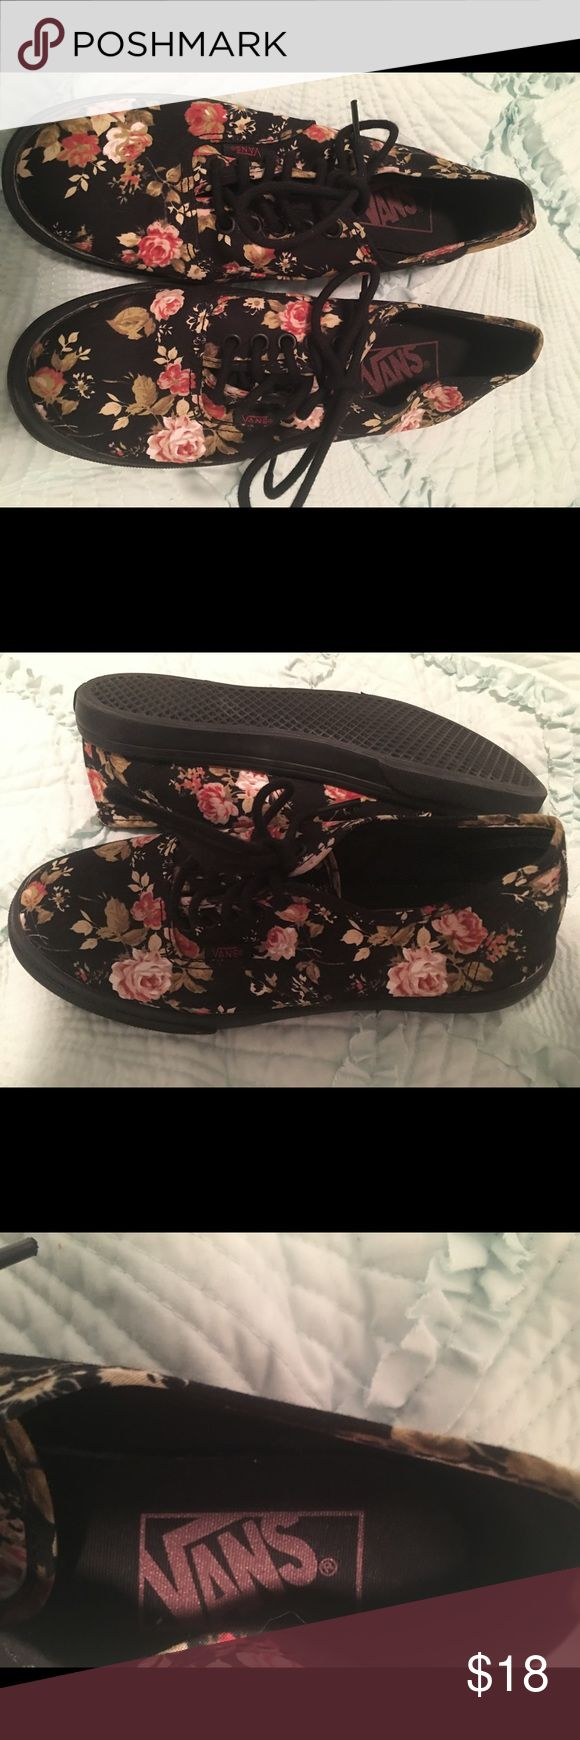 Floral new vans tennis shoes 5 1/2 size Vans brand never worn new ladies 5 1/2 floral tennis shoes totally cute and comfy Vans Shoes Sneakers